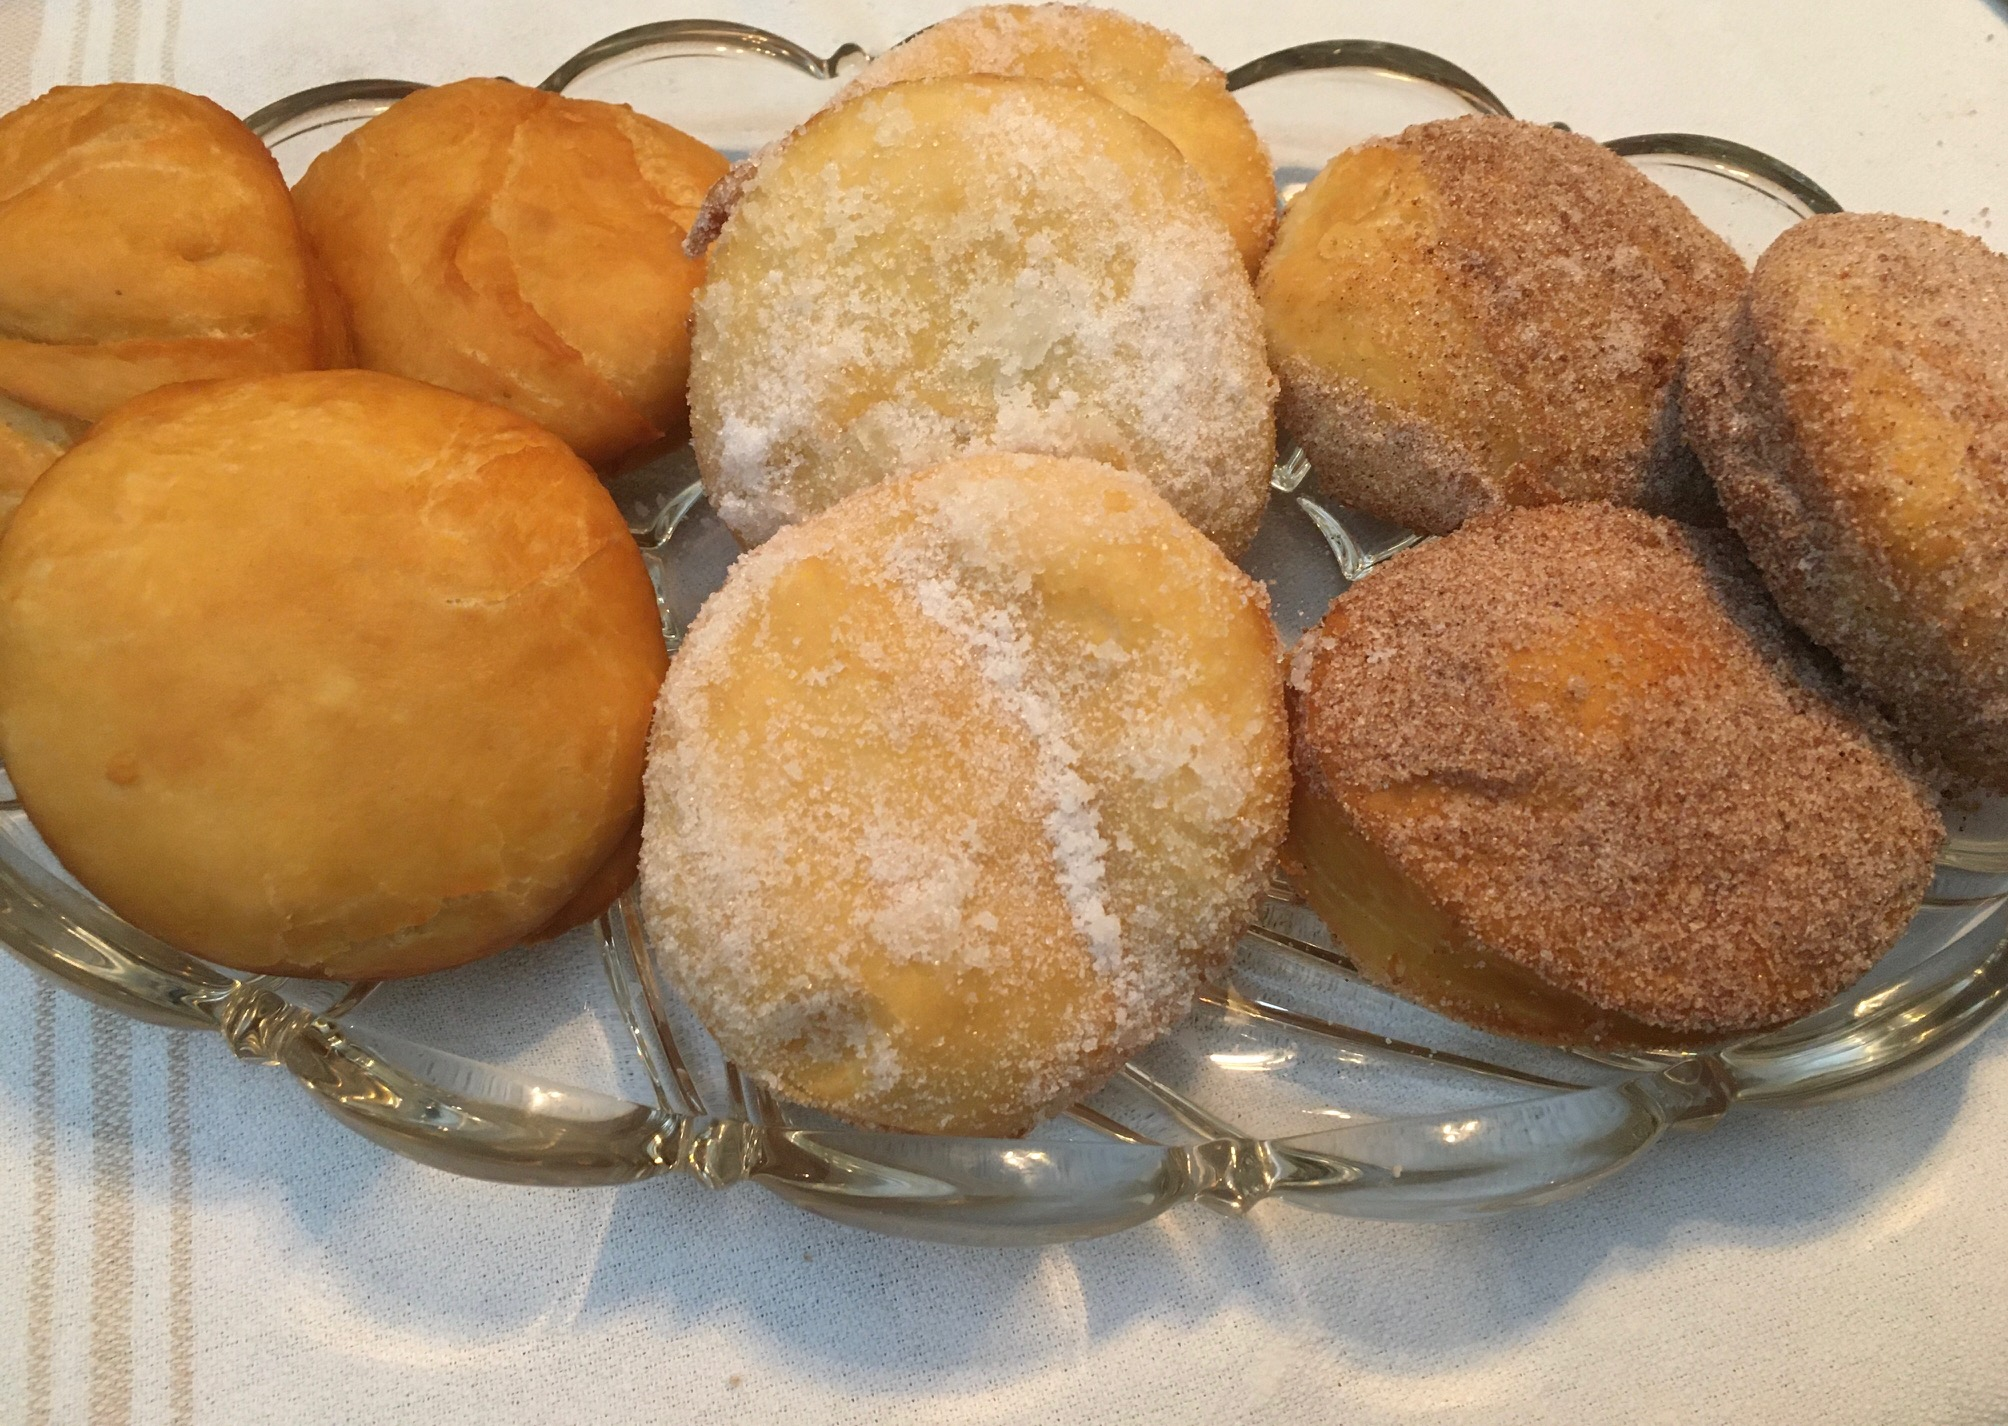 Amish Fasnachts Traditional And Delicious Amish365 Com